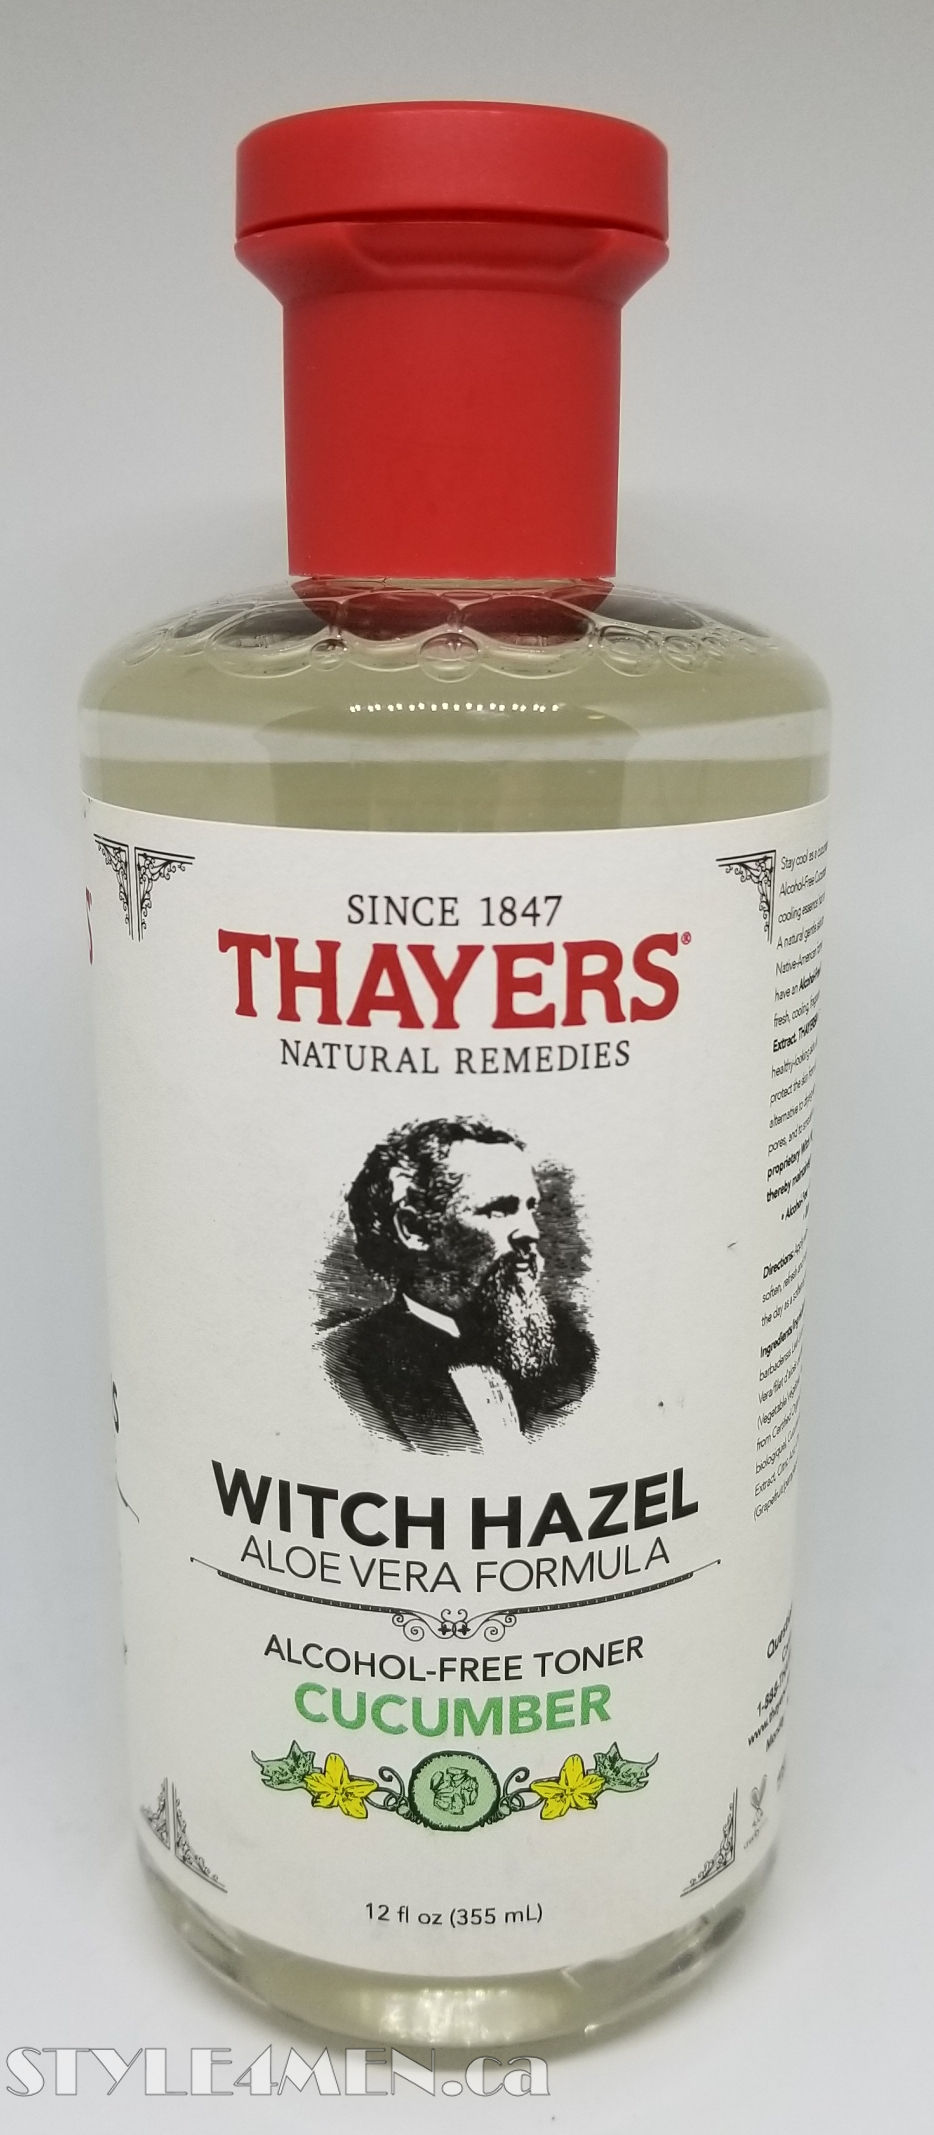 Thayers Toner – Revisited as a refreshing face wash